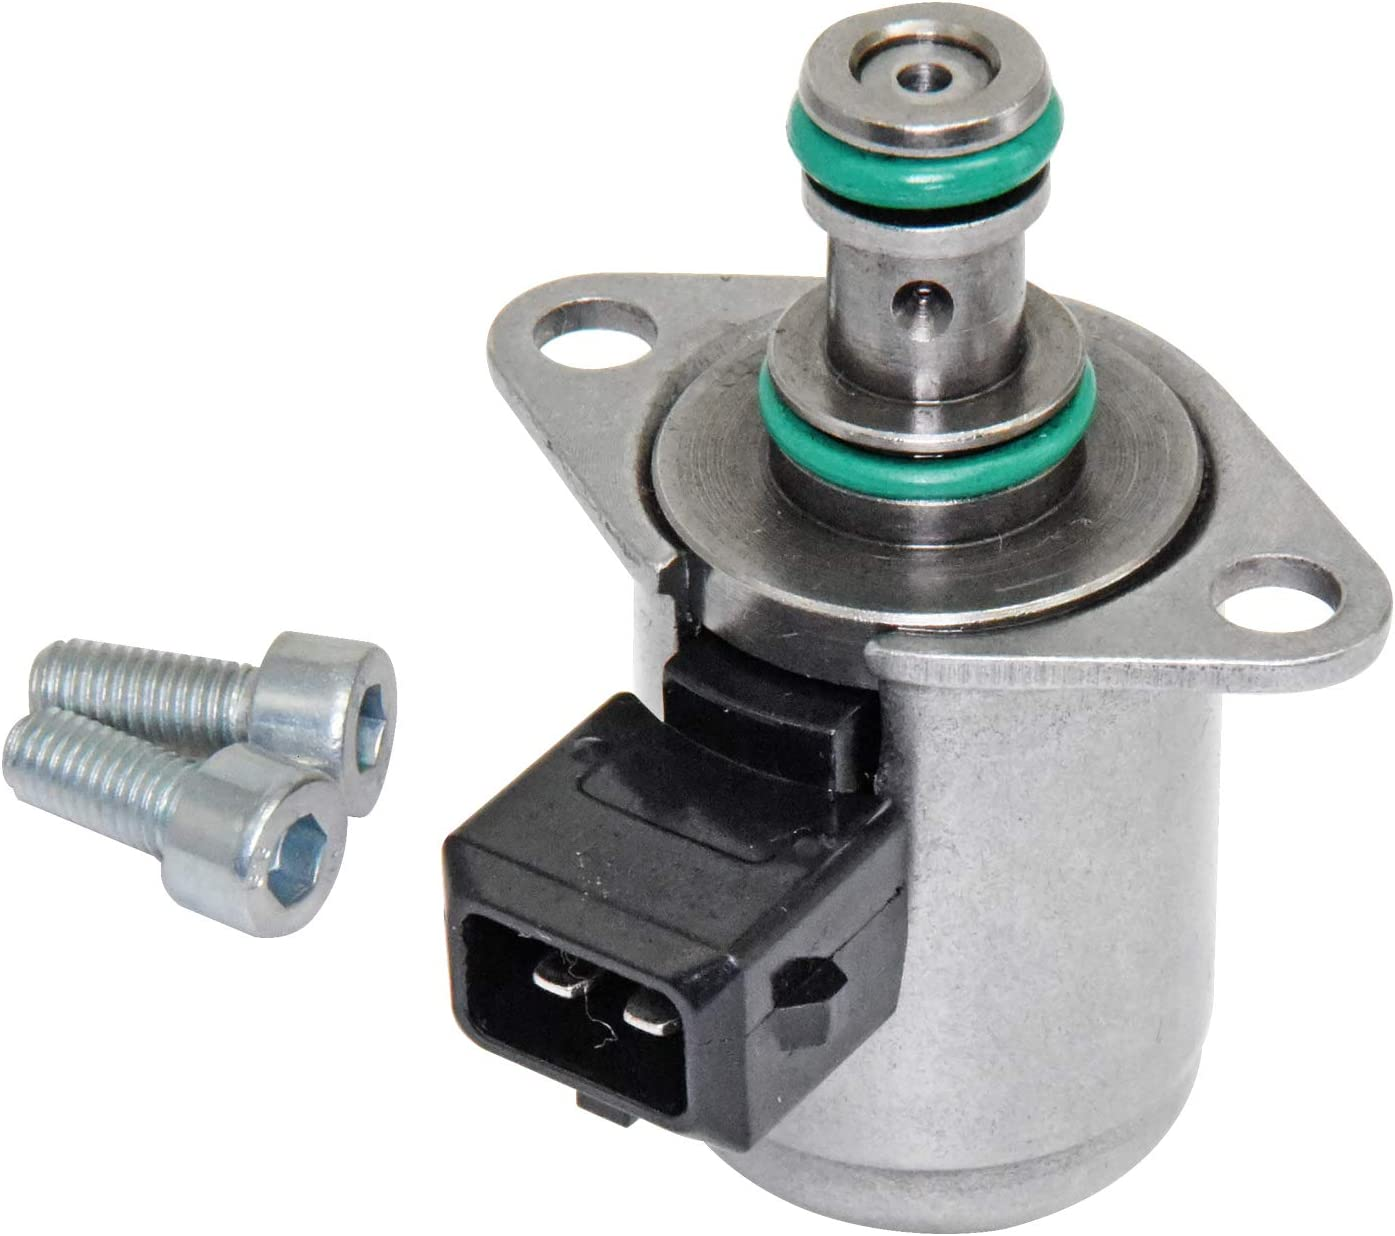 Power Speed Related Steering Solenoid for 100% quality warranty! Valve Mercedes Benz W1 Popular standard